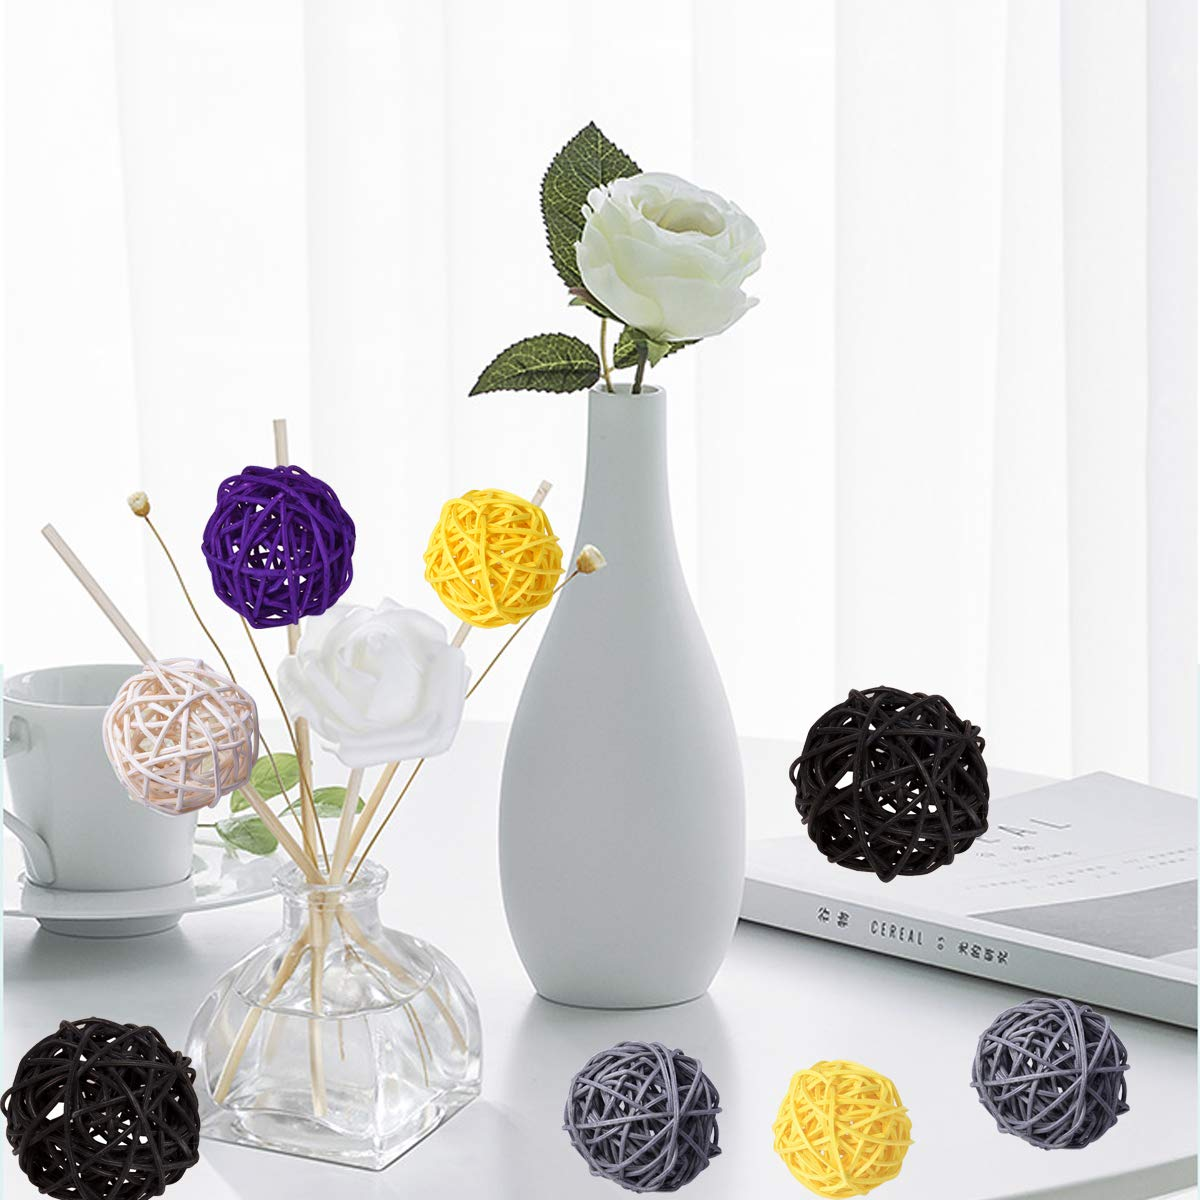 15pcs 2Wedding Table Decoration,Themed Party,Baby Shower 15, white-black-purple Aromatherapy Accessories,Orbs Vase Fillers Wicker Rattan Balls Decorative Orbs Vase Fillers for Craft Project